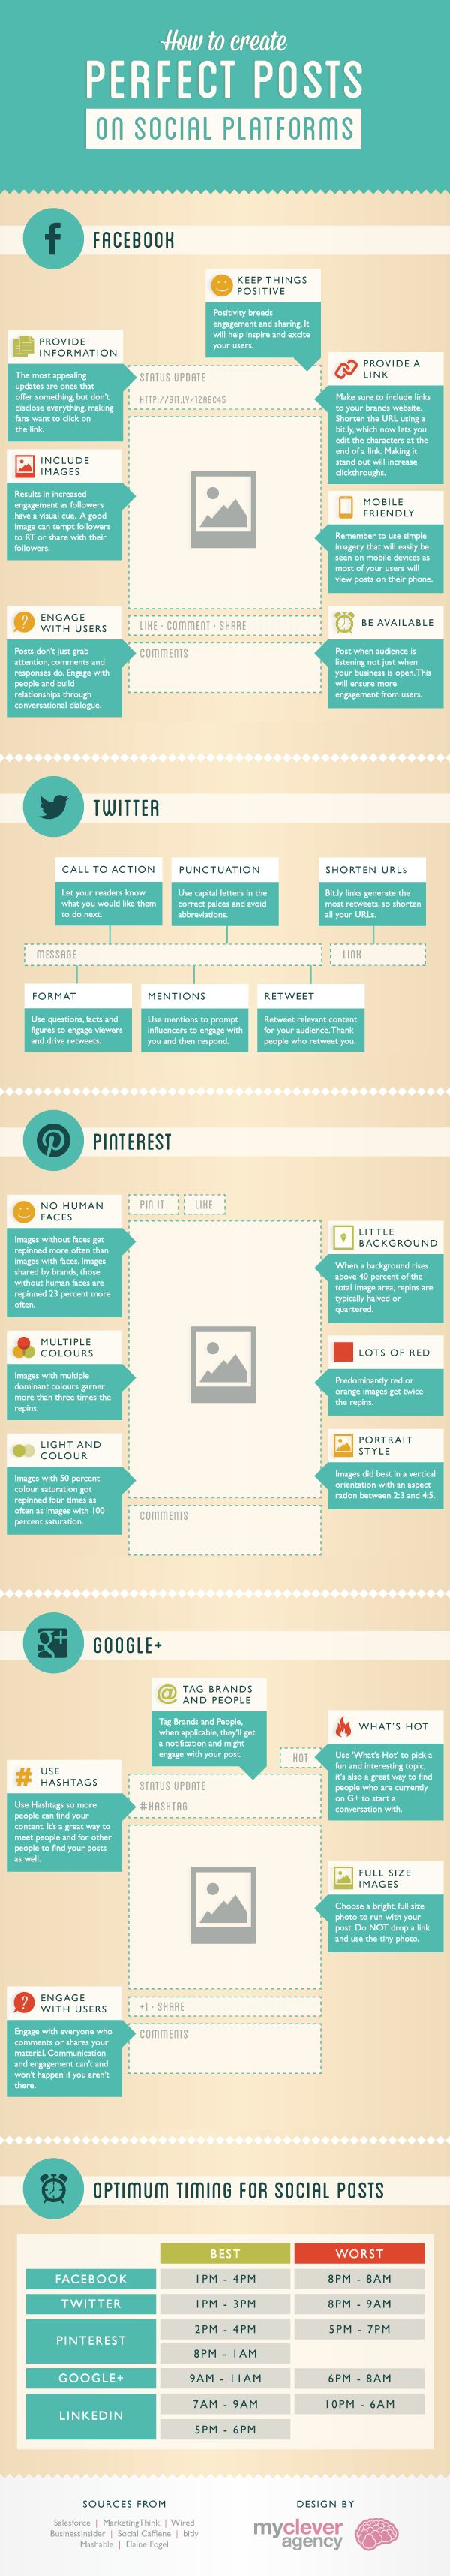 Infographic describing how to create the perfect social media post on multiple platforms